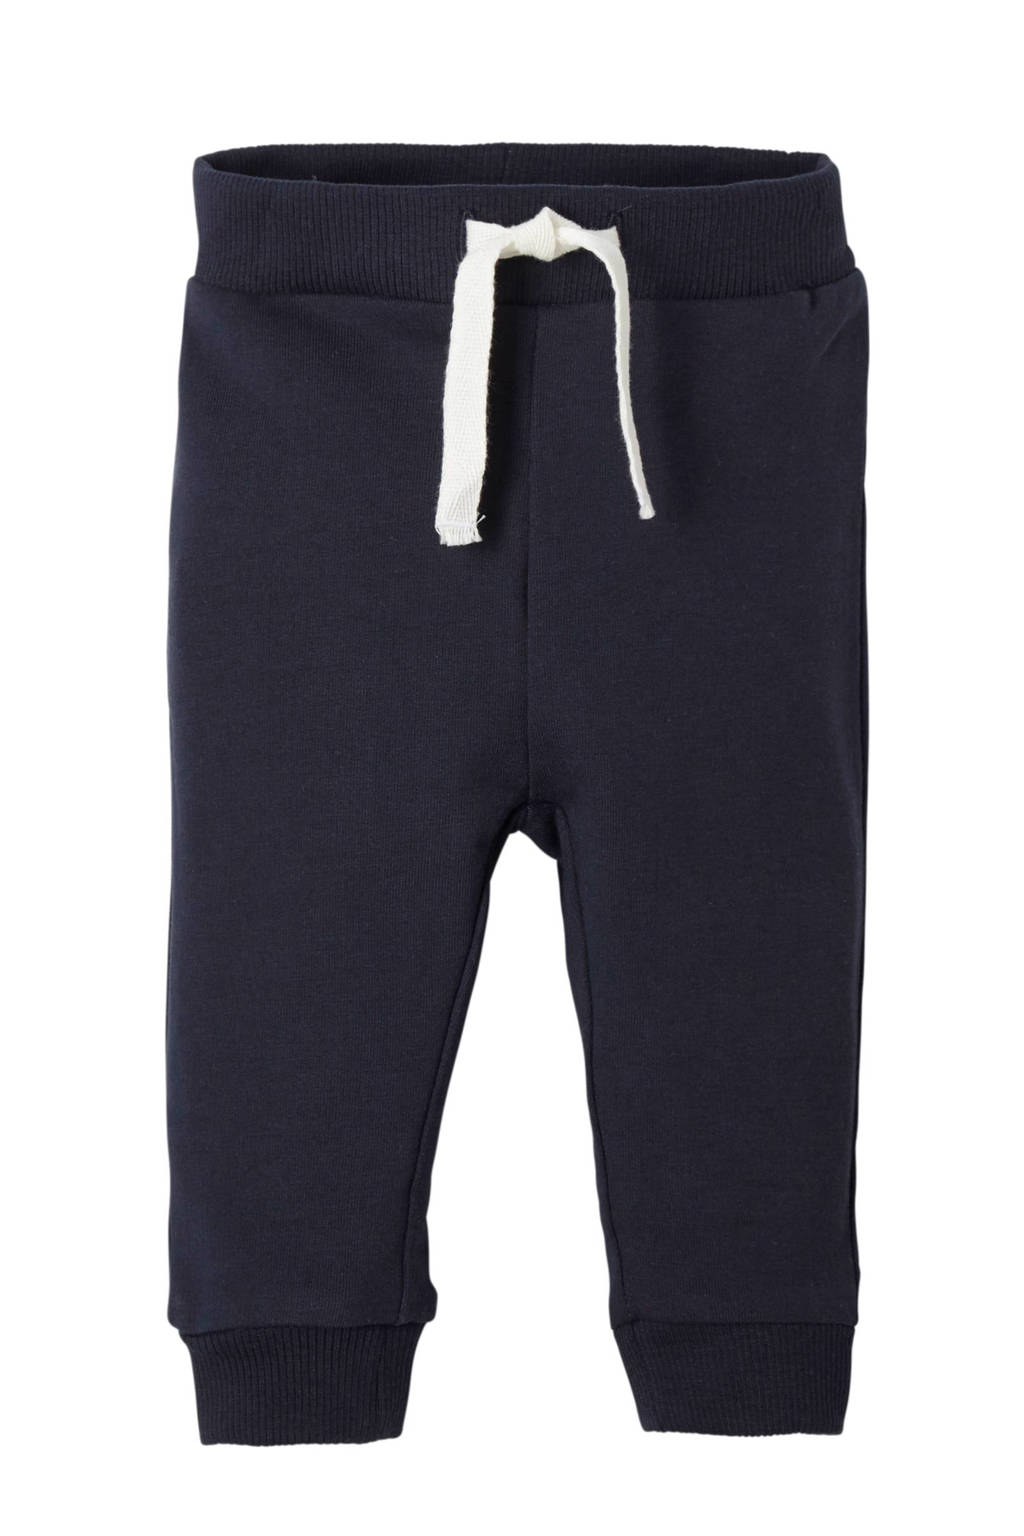 name it BABY   joggingbroek donkerblauw, Donkerblauw